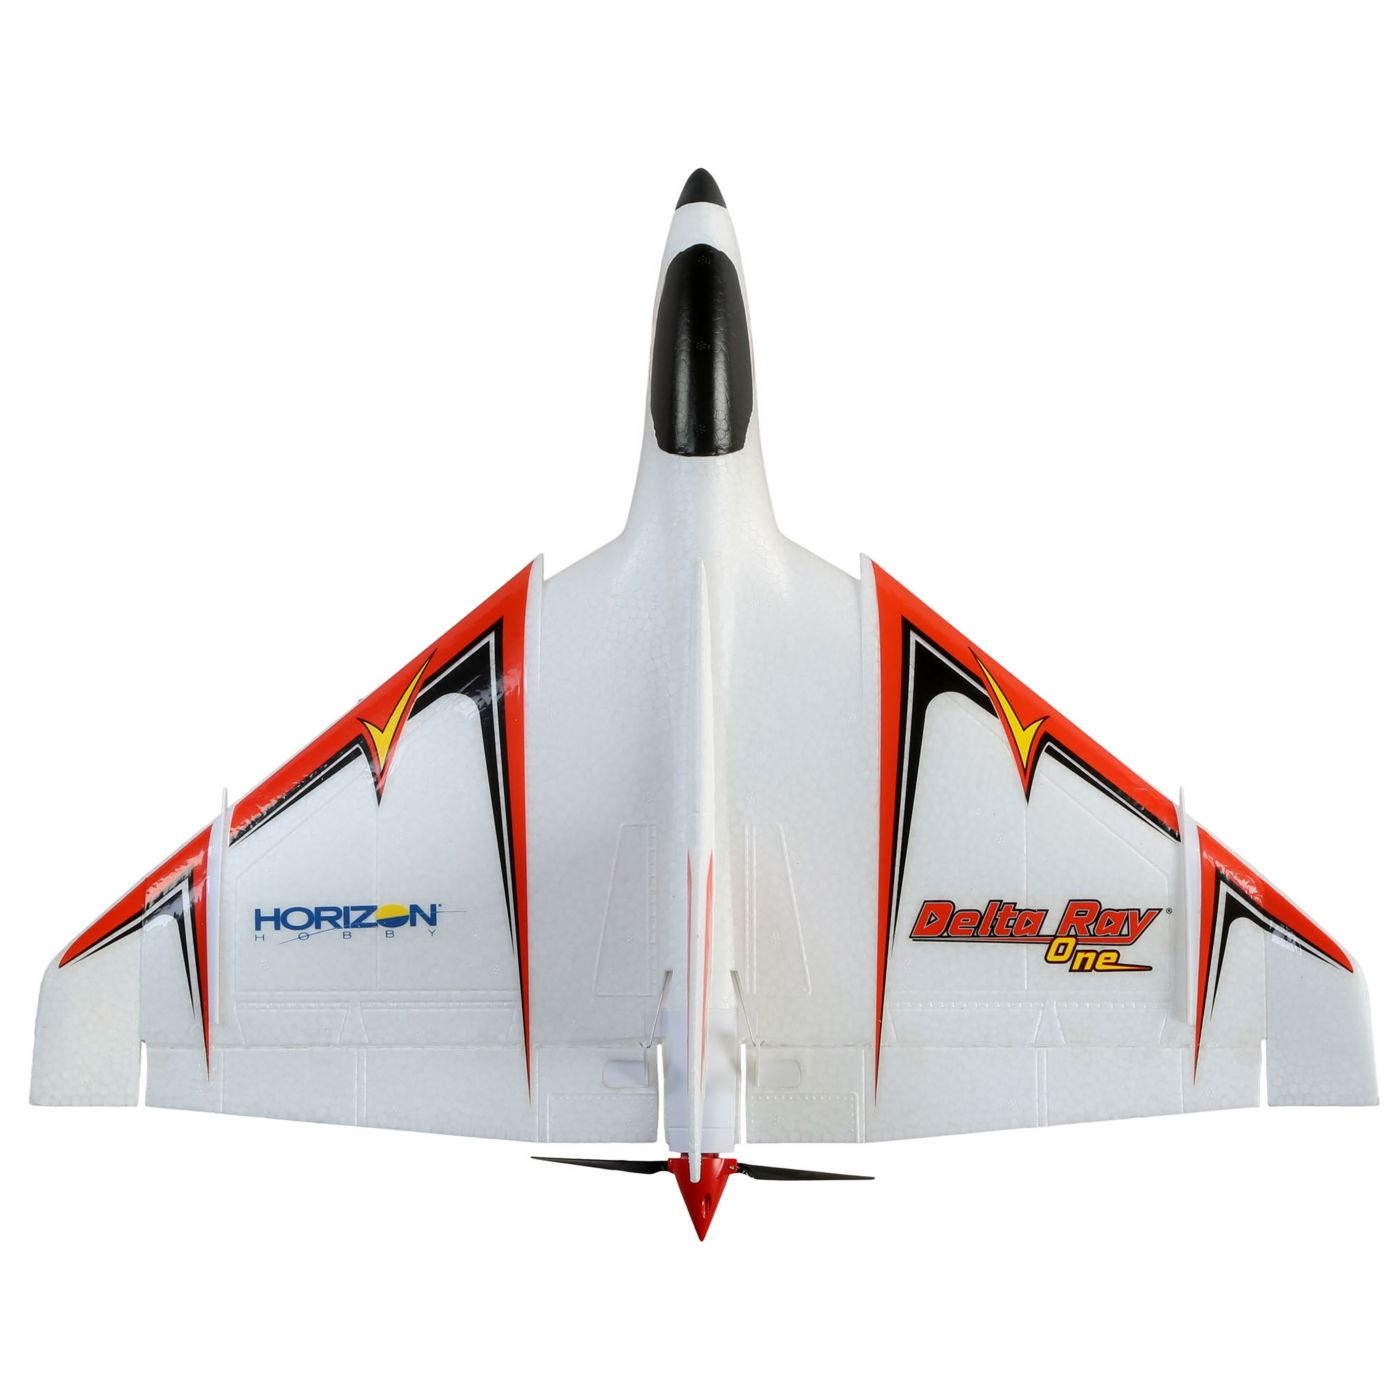 Delta Ray One Rtf With Safe Technology 500mm Horizonhobby Lipo Balance Charger Ac Input Us Products Classic Army Categories